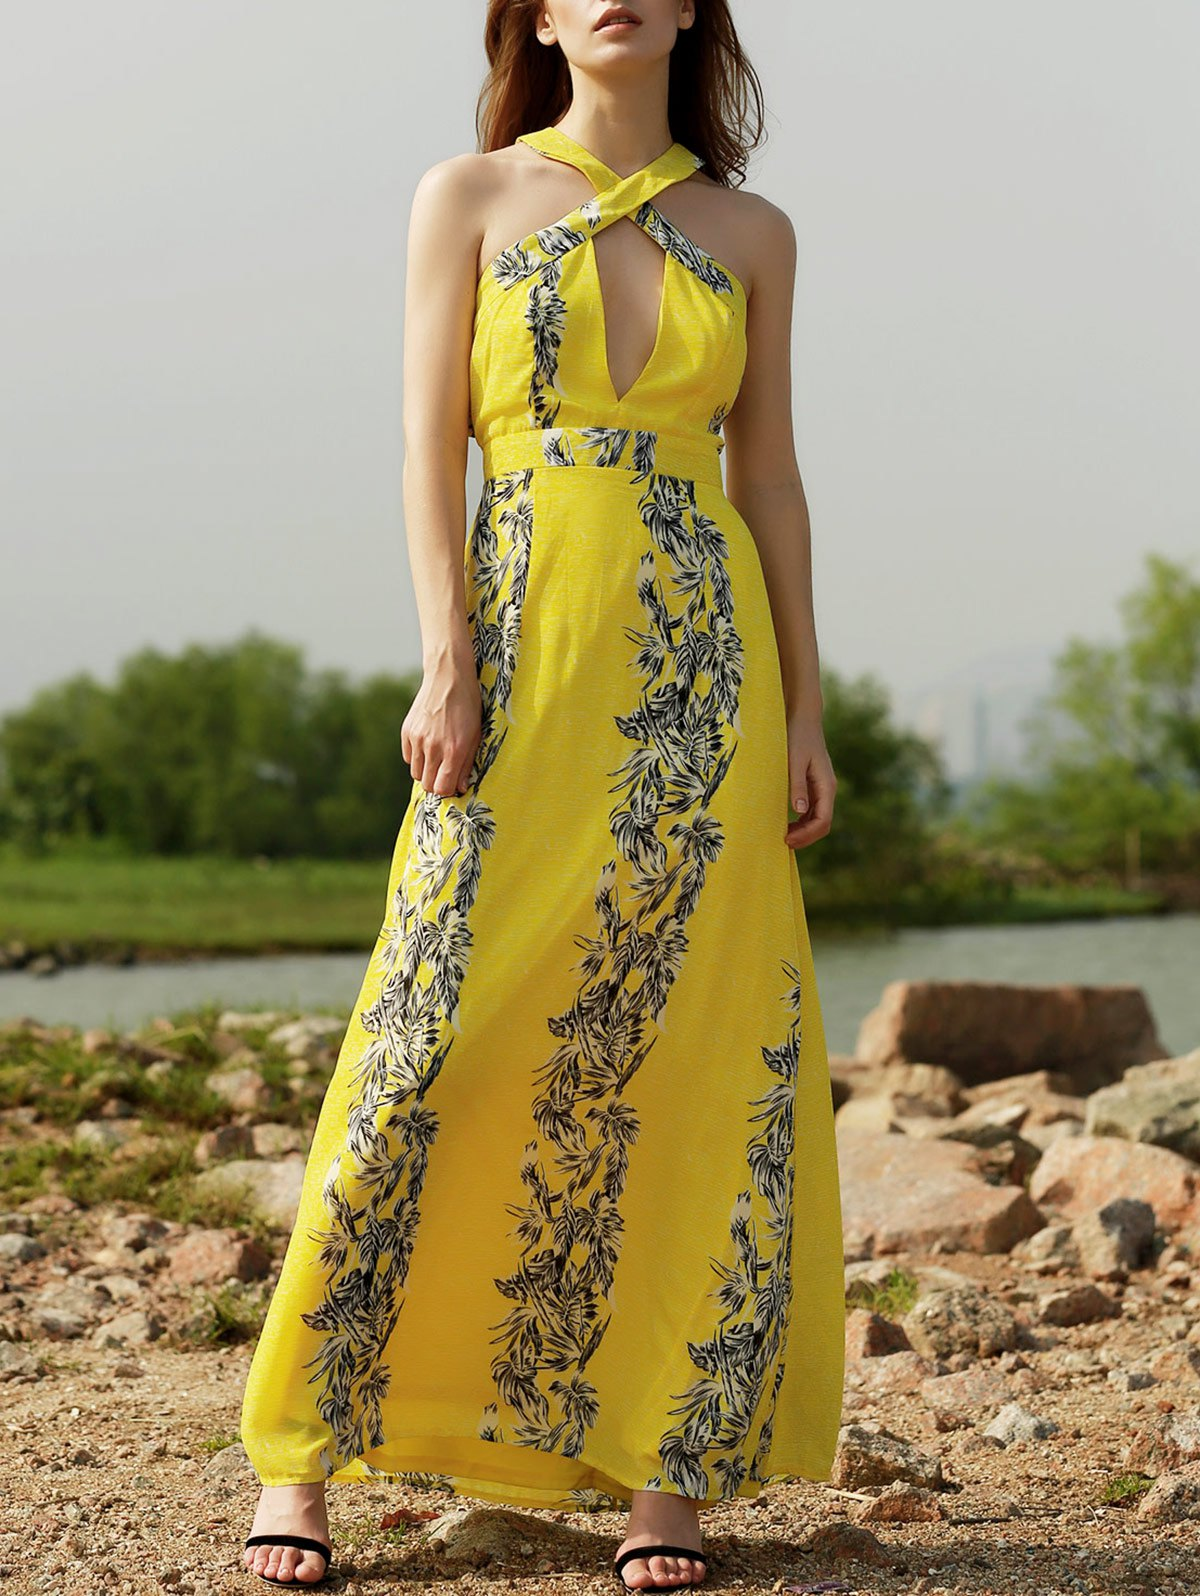 Sleeveless Crossed Cut Out Printed Maxi Dress 177585903